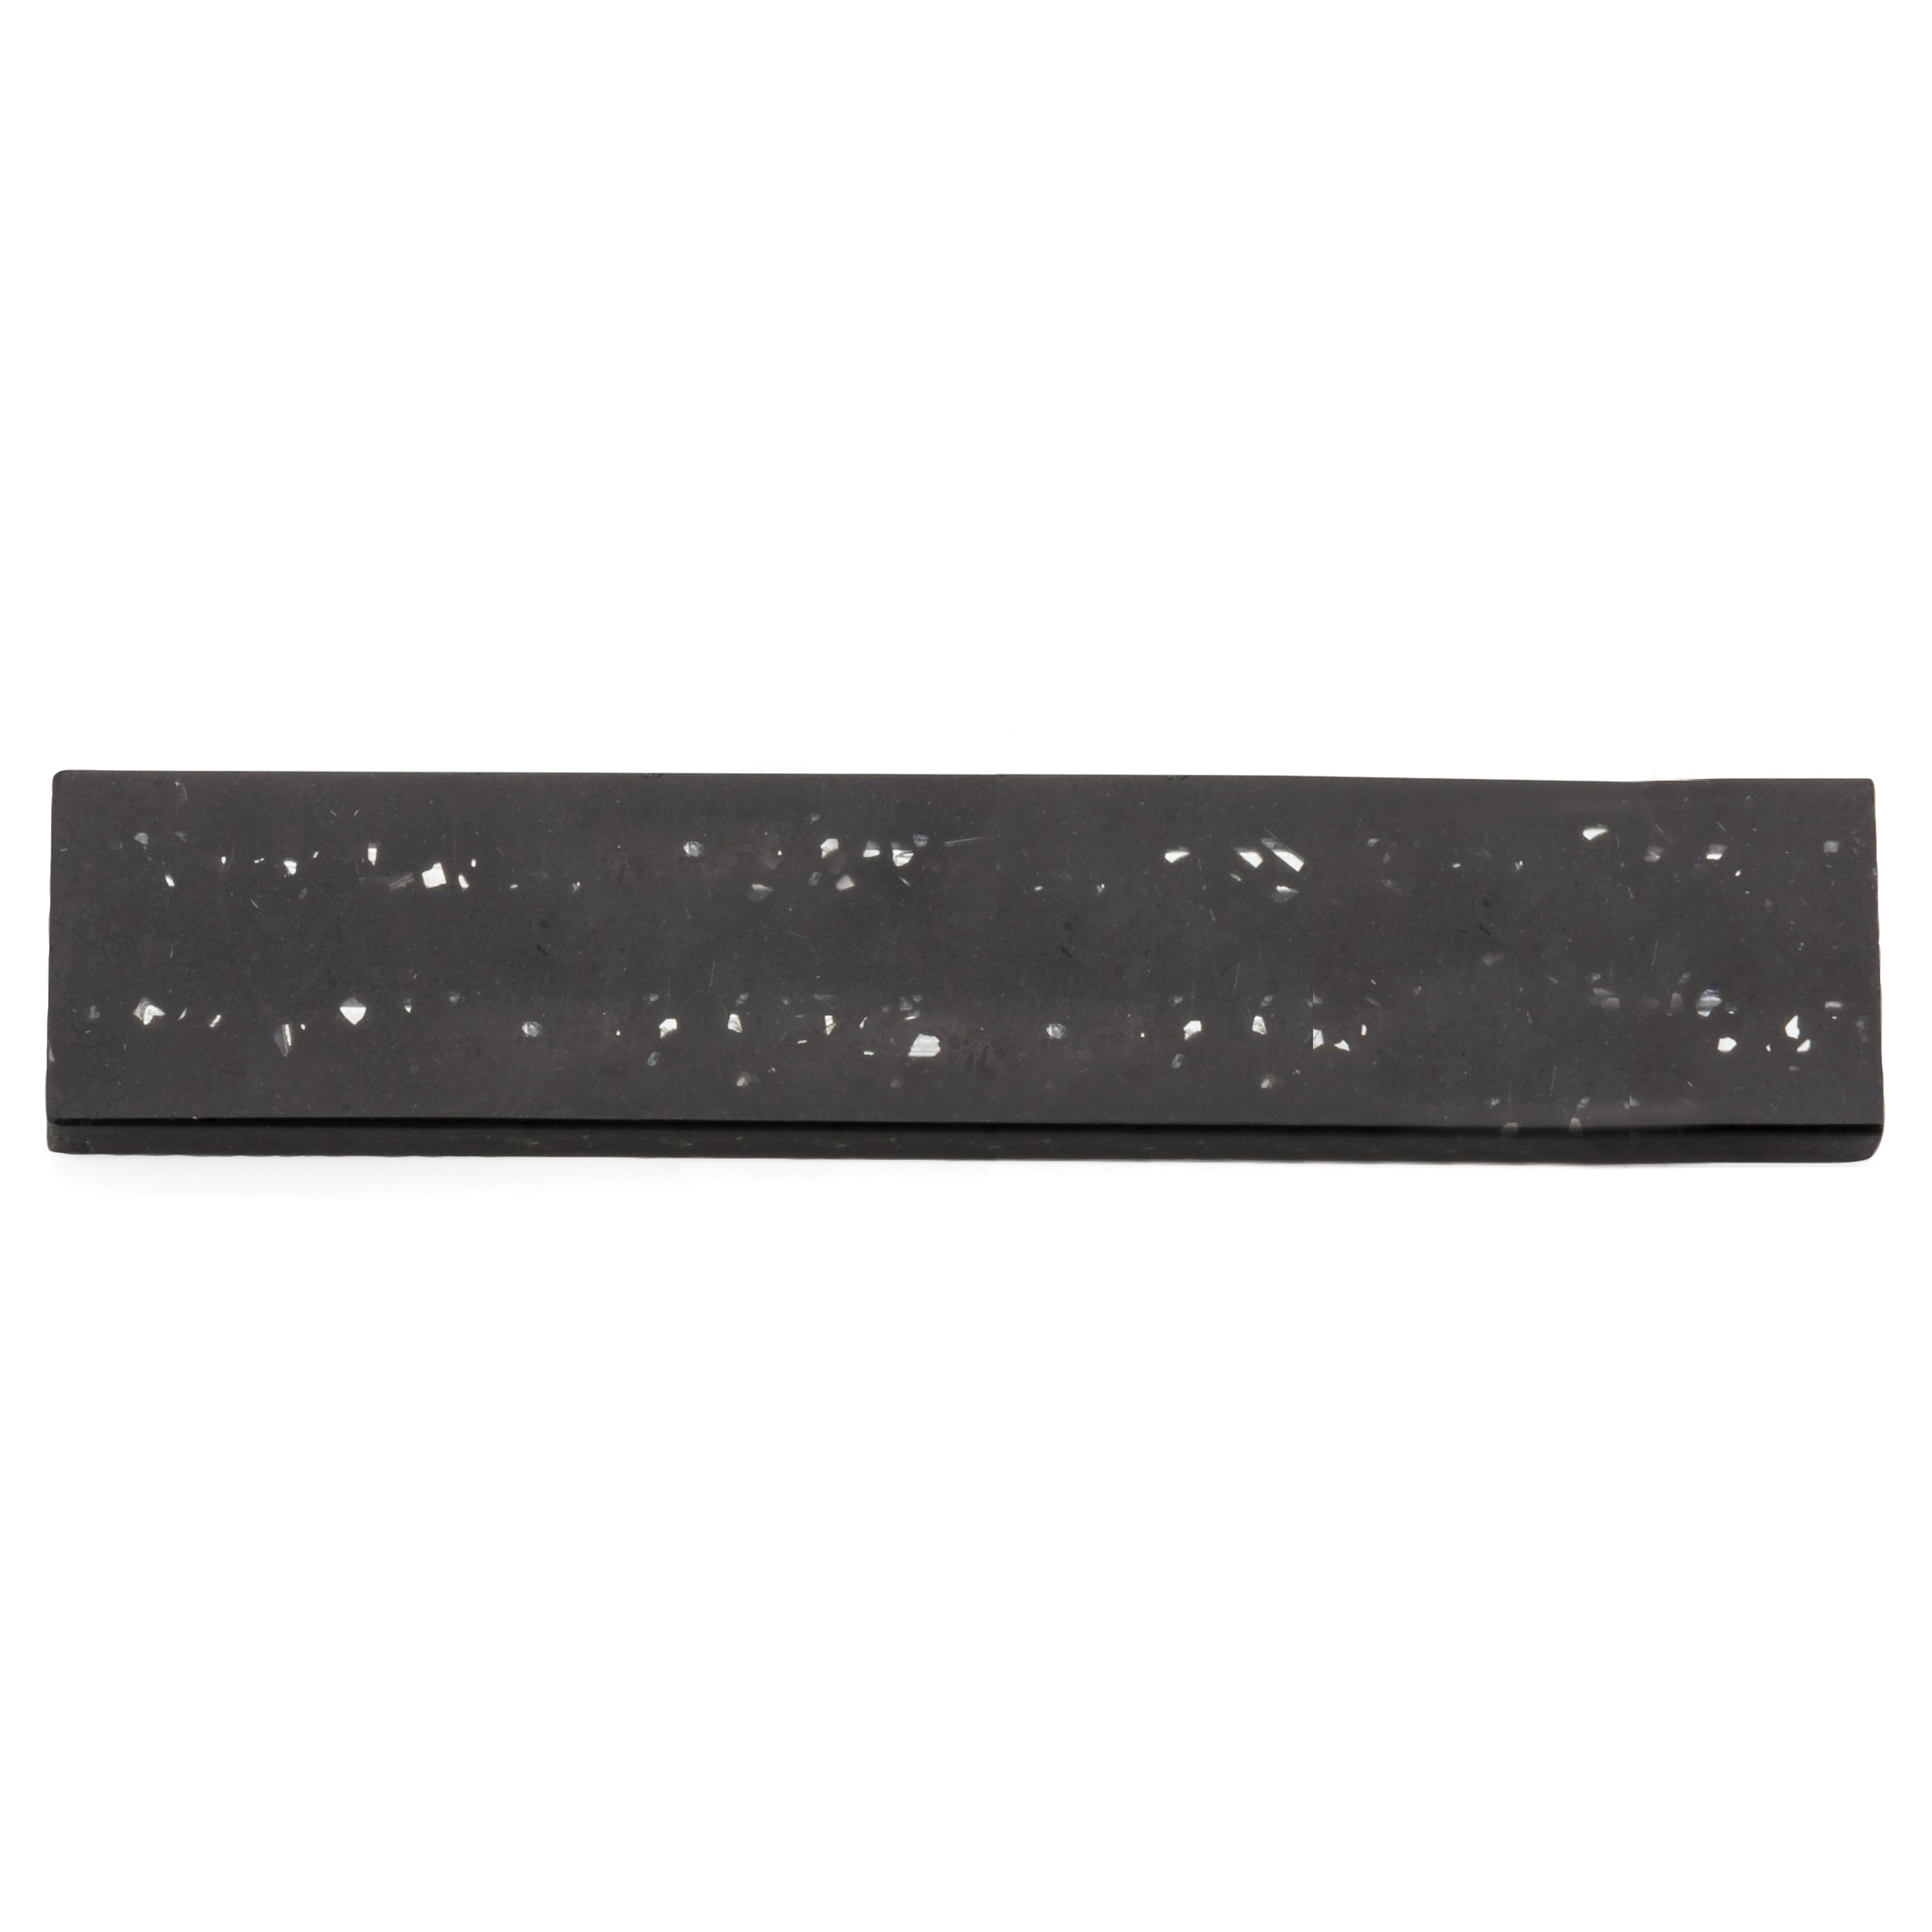 RSVP Black Quartz Stone 10 Inch Magnetic Knife Bar